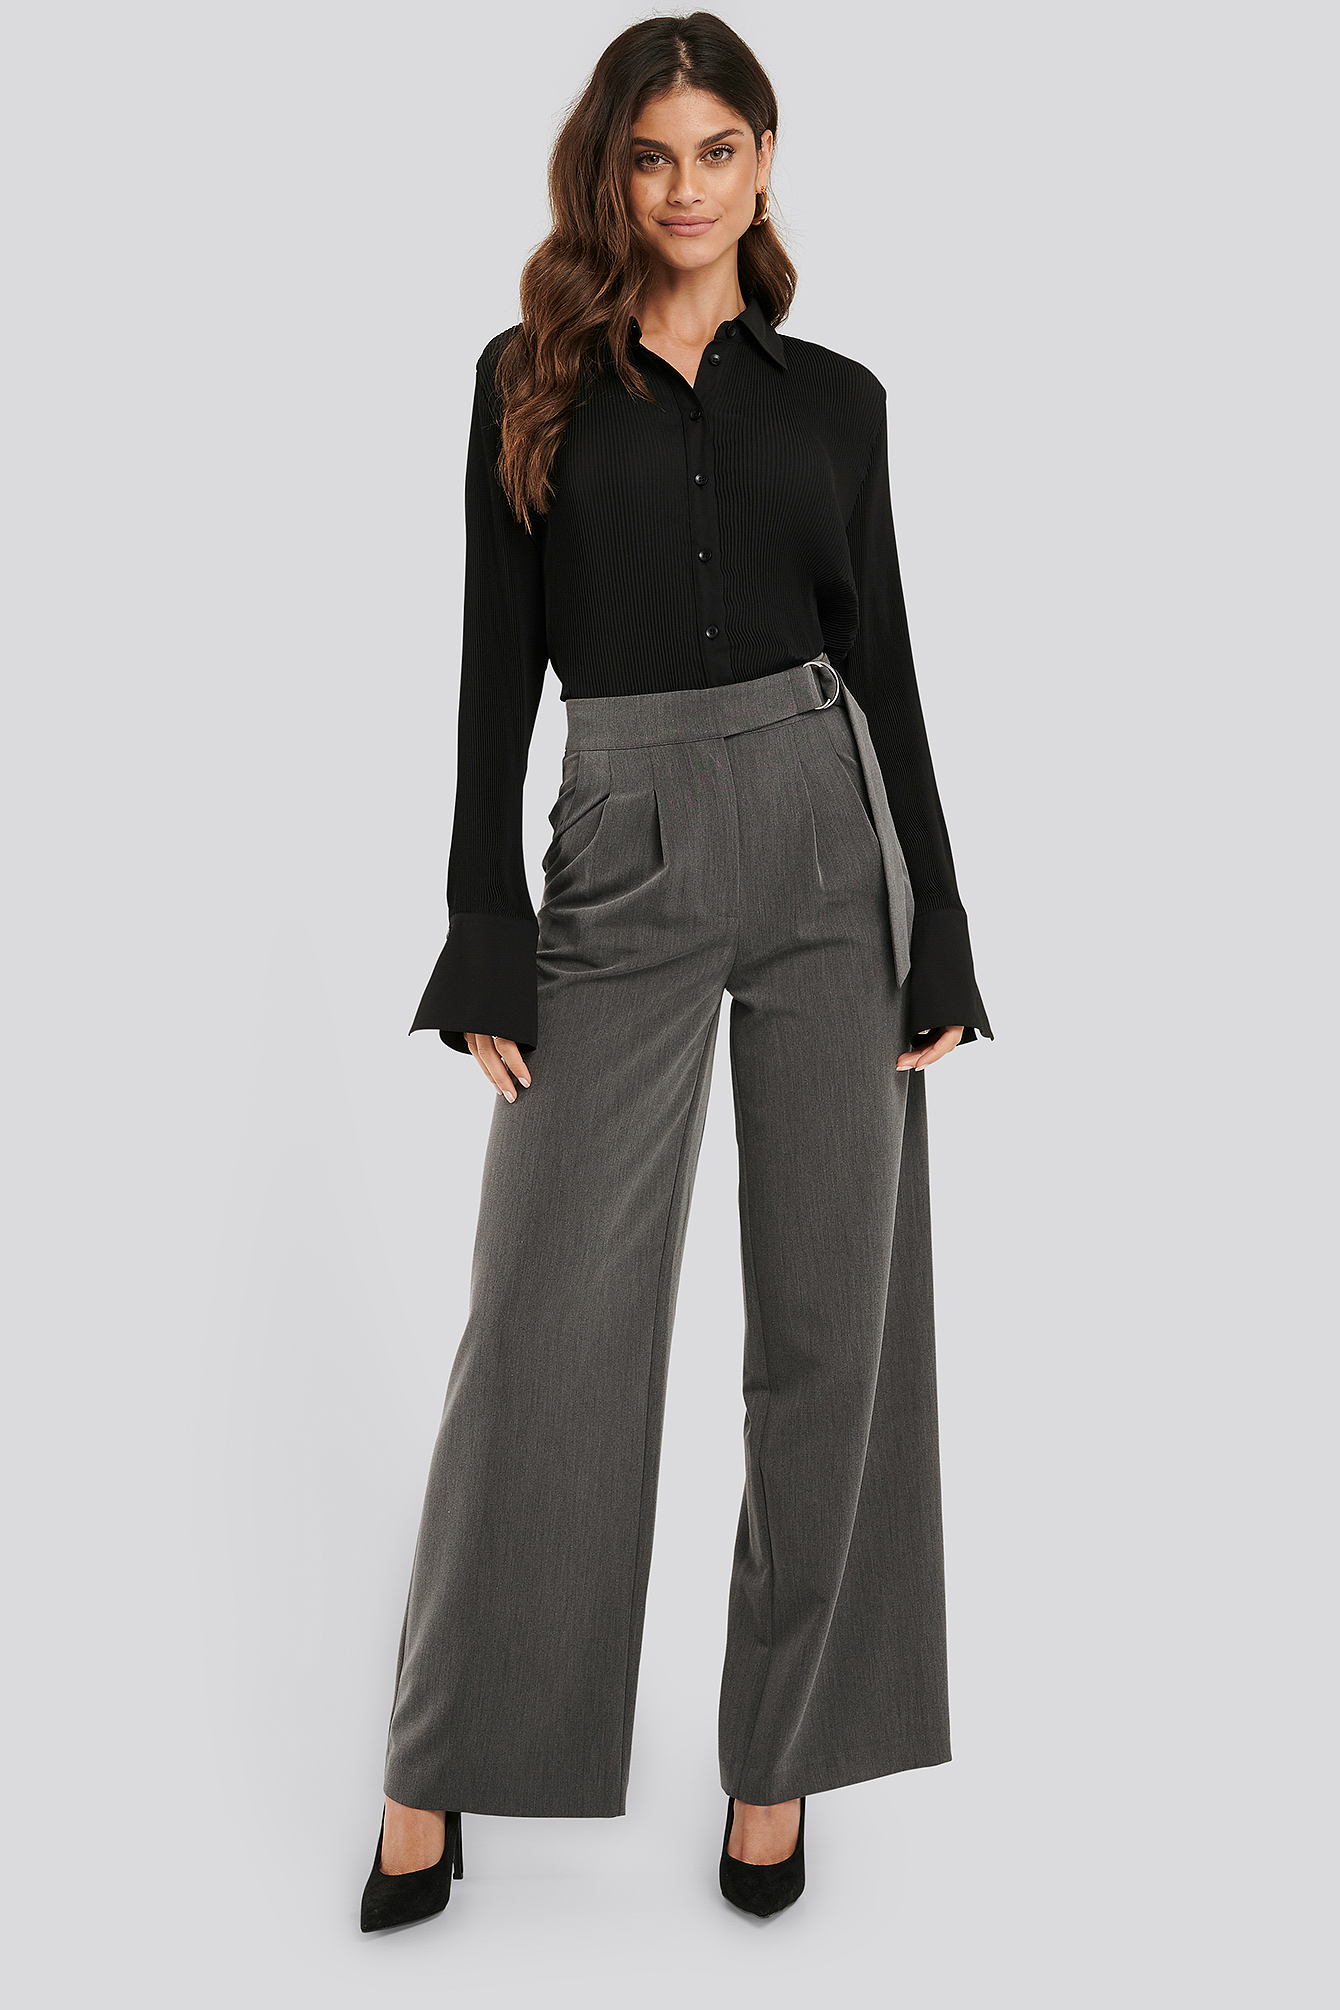 NA-KD Classic D-ring Belted Suit Pants - Grey